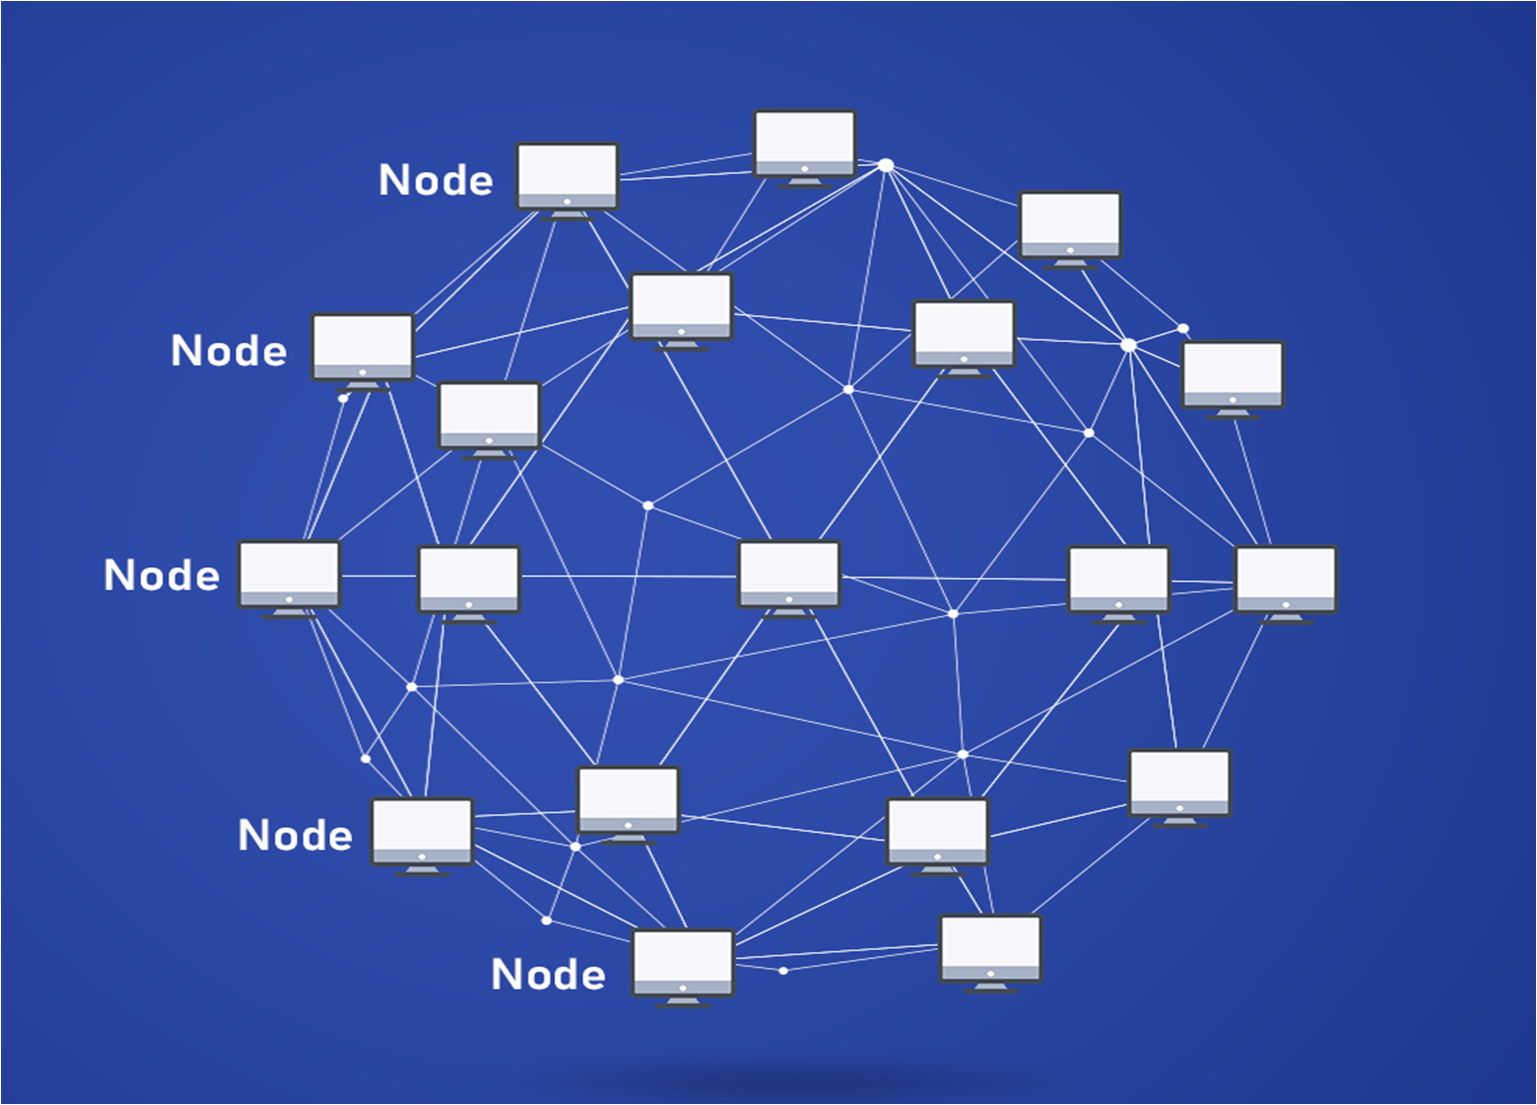 Getting started with NOWNodes